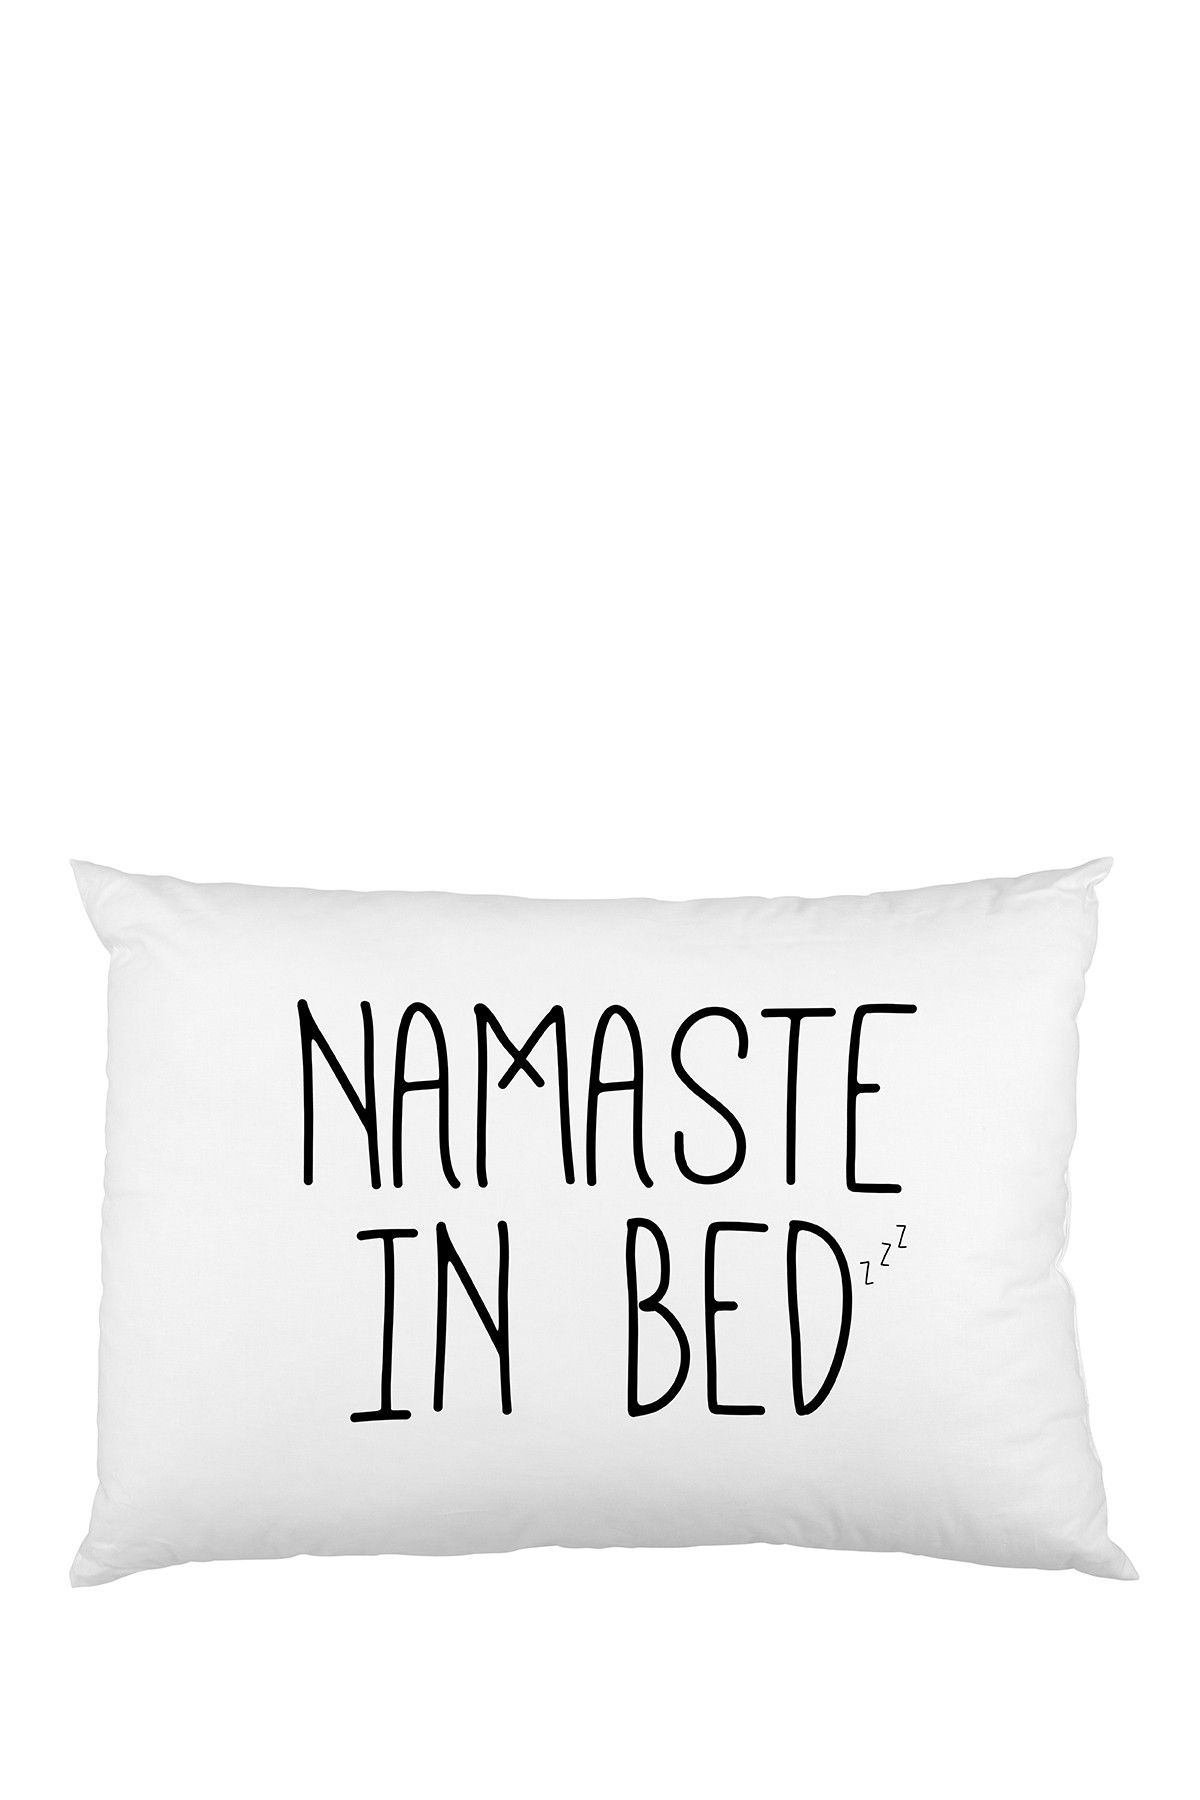 Sounds about right lol love this cute namaste in bed pillow case